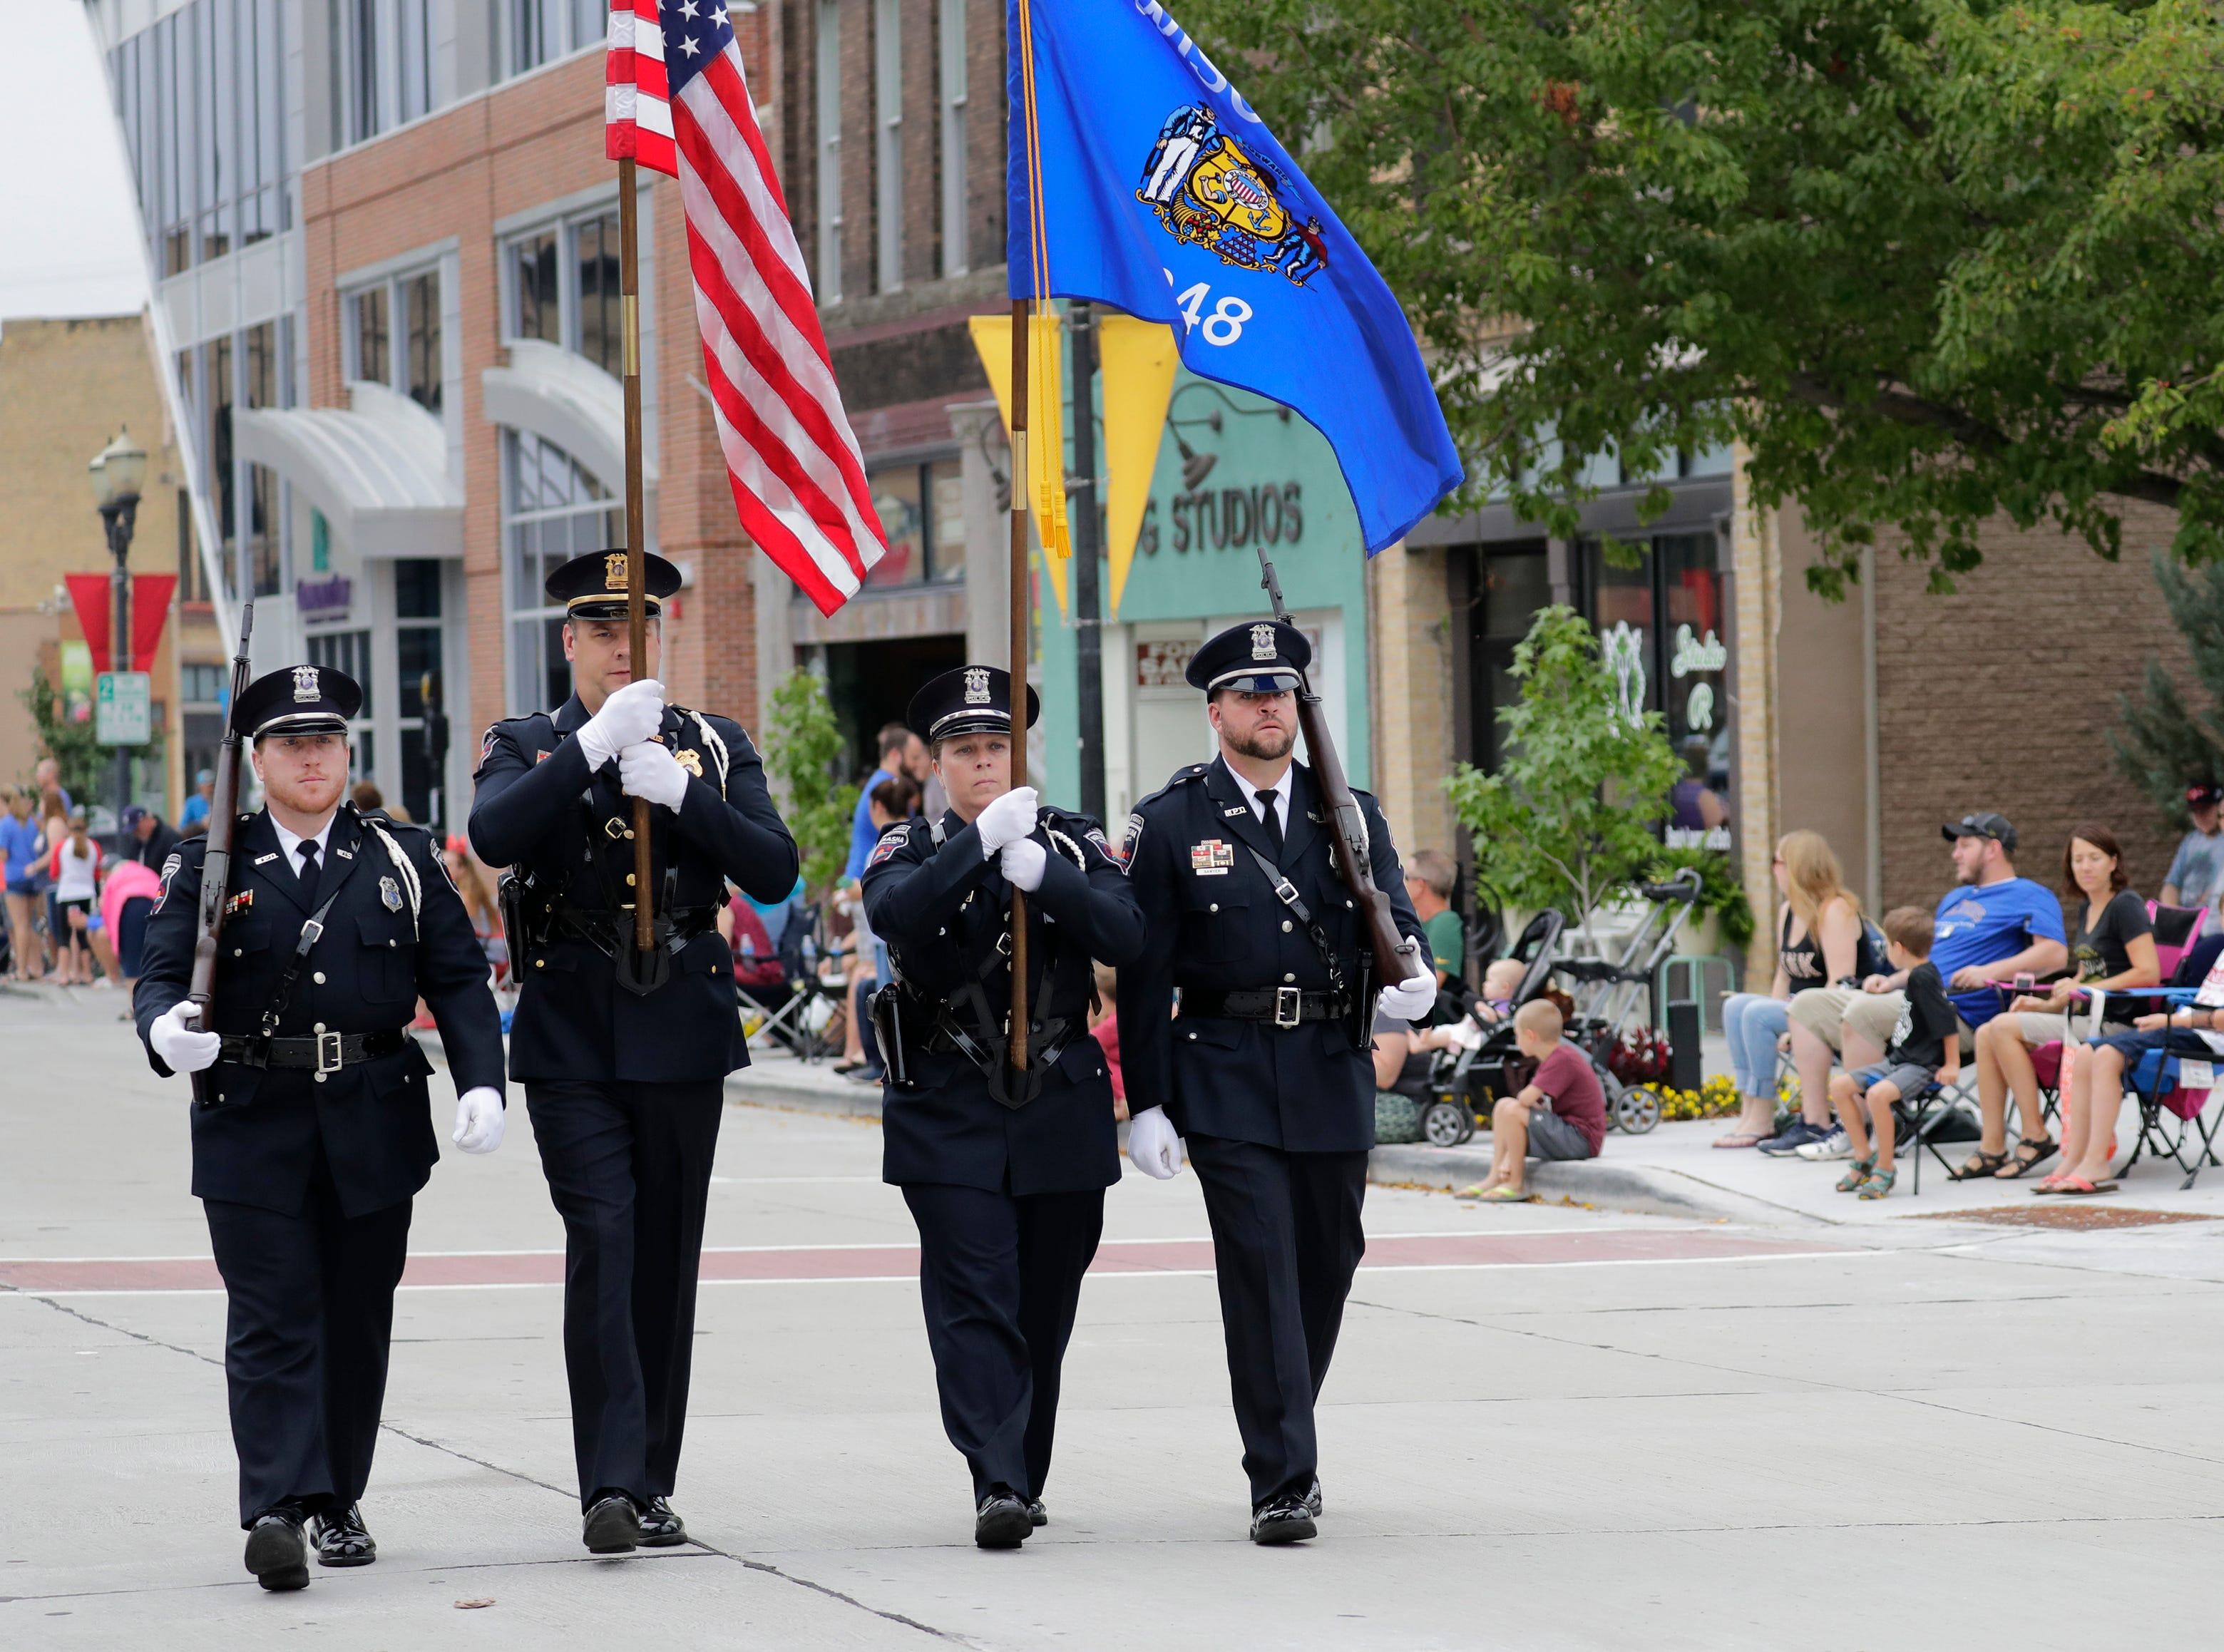 The Menasha Police Department's color guard march during the Neenah-Menasha Labor Day Parade Monday, Sept. 3, 2018, in downtown Menasha, Wis. 